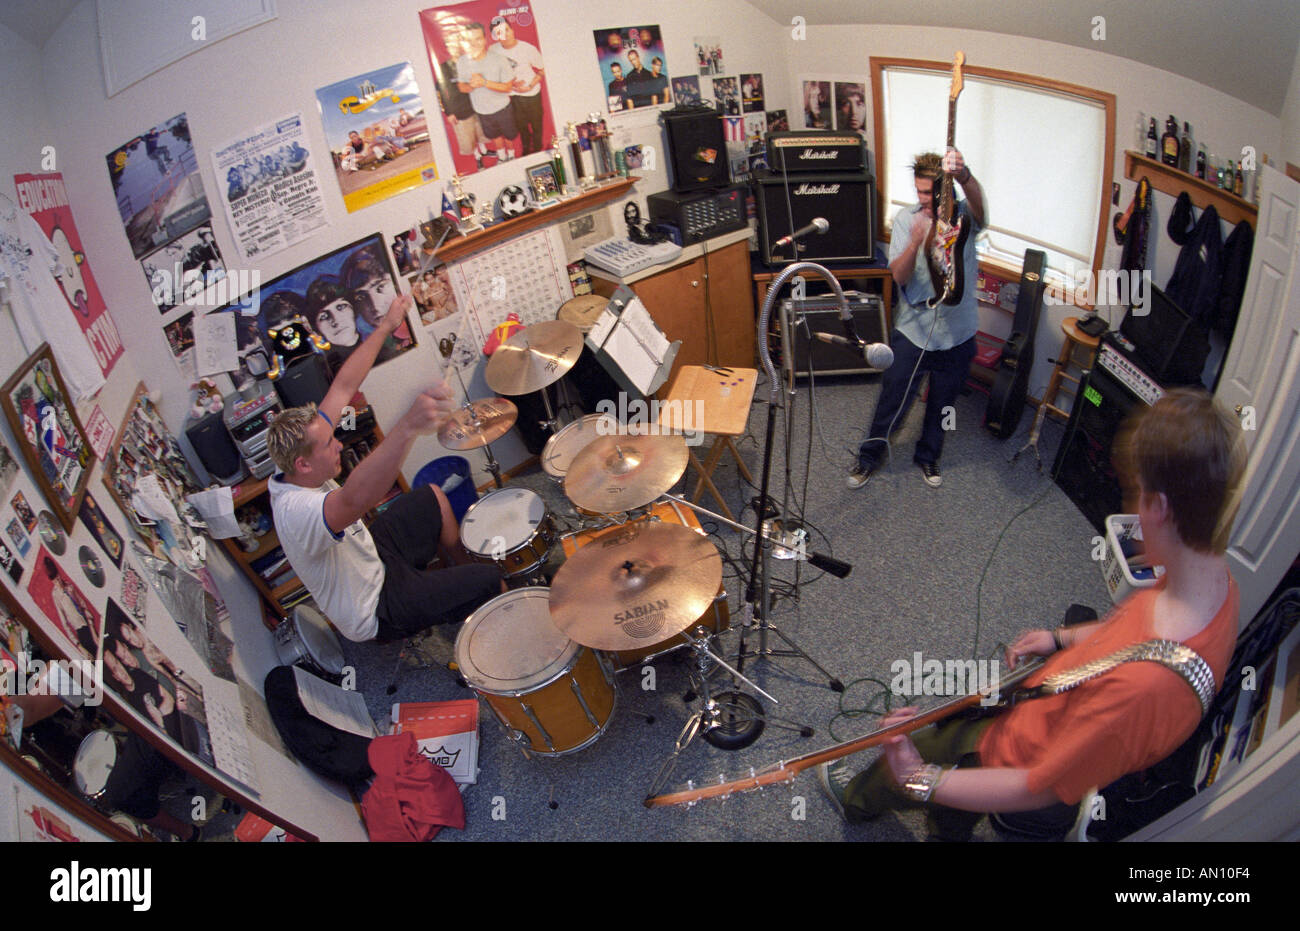 High school punk rock band 36drive practices in bedroom - Stock Image